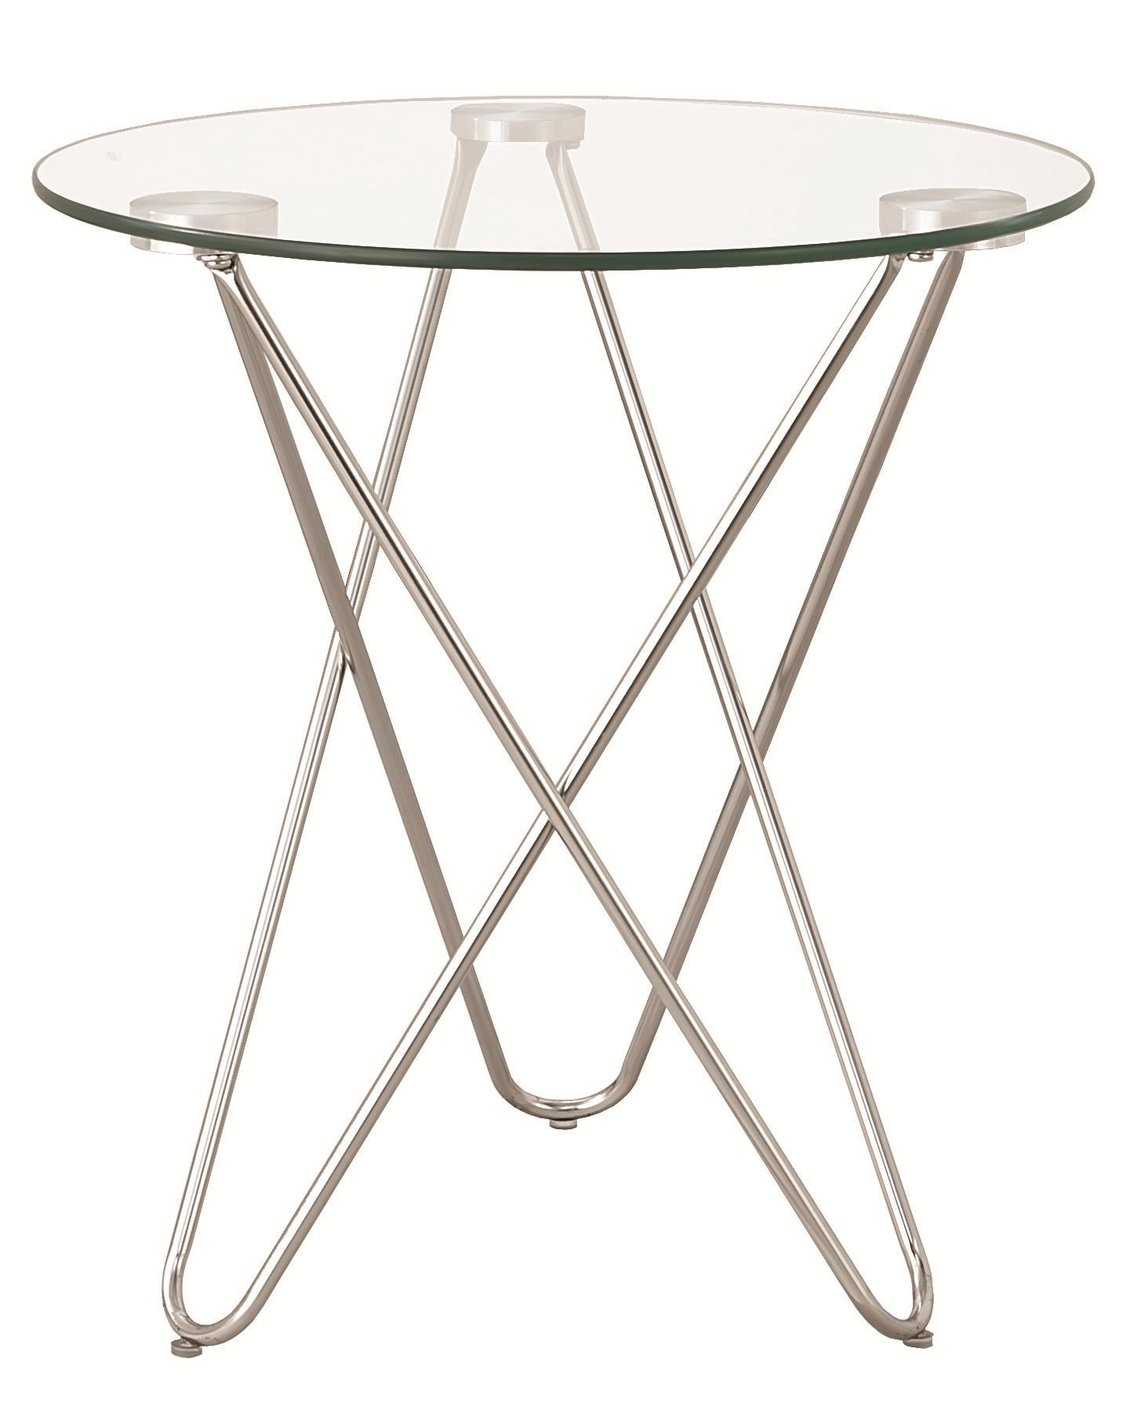 clear metal accent table steal sofa furniture los angeles silver glass round mirror blue and white coffee long narrow behind couch bedside tables kmart floor french beds cherry